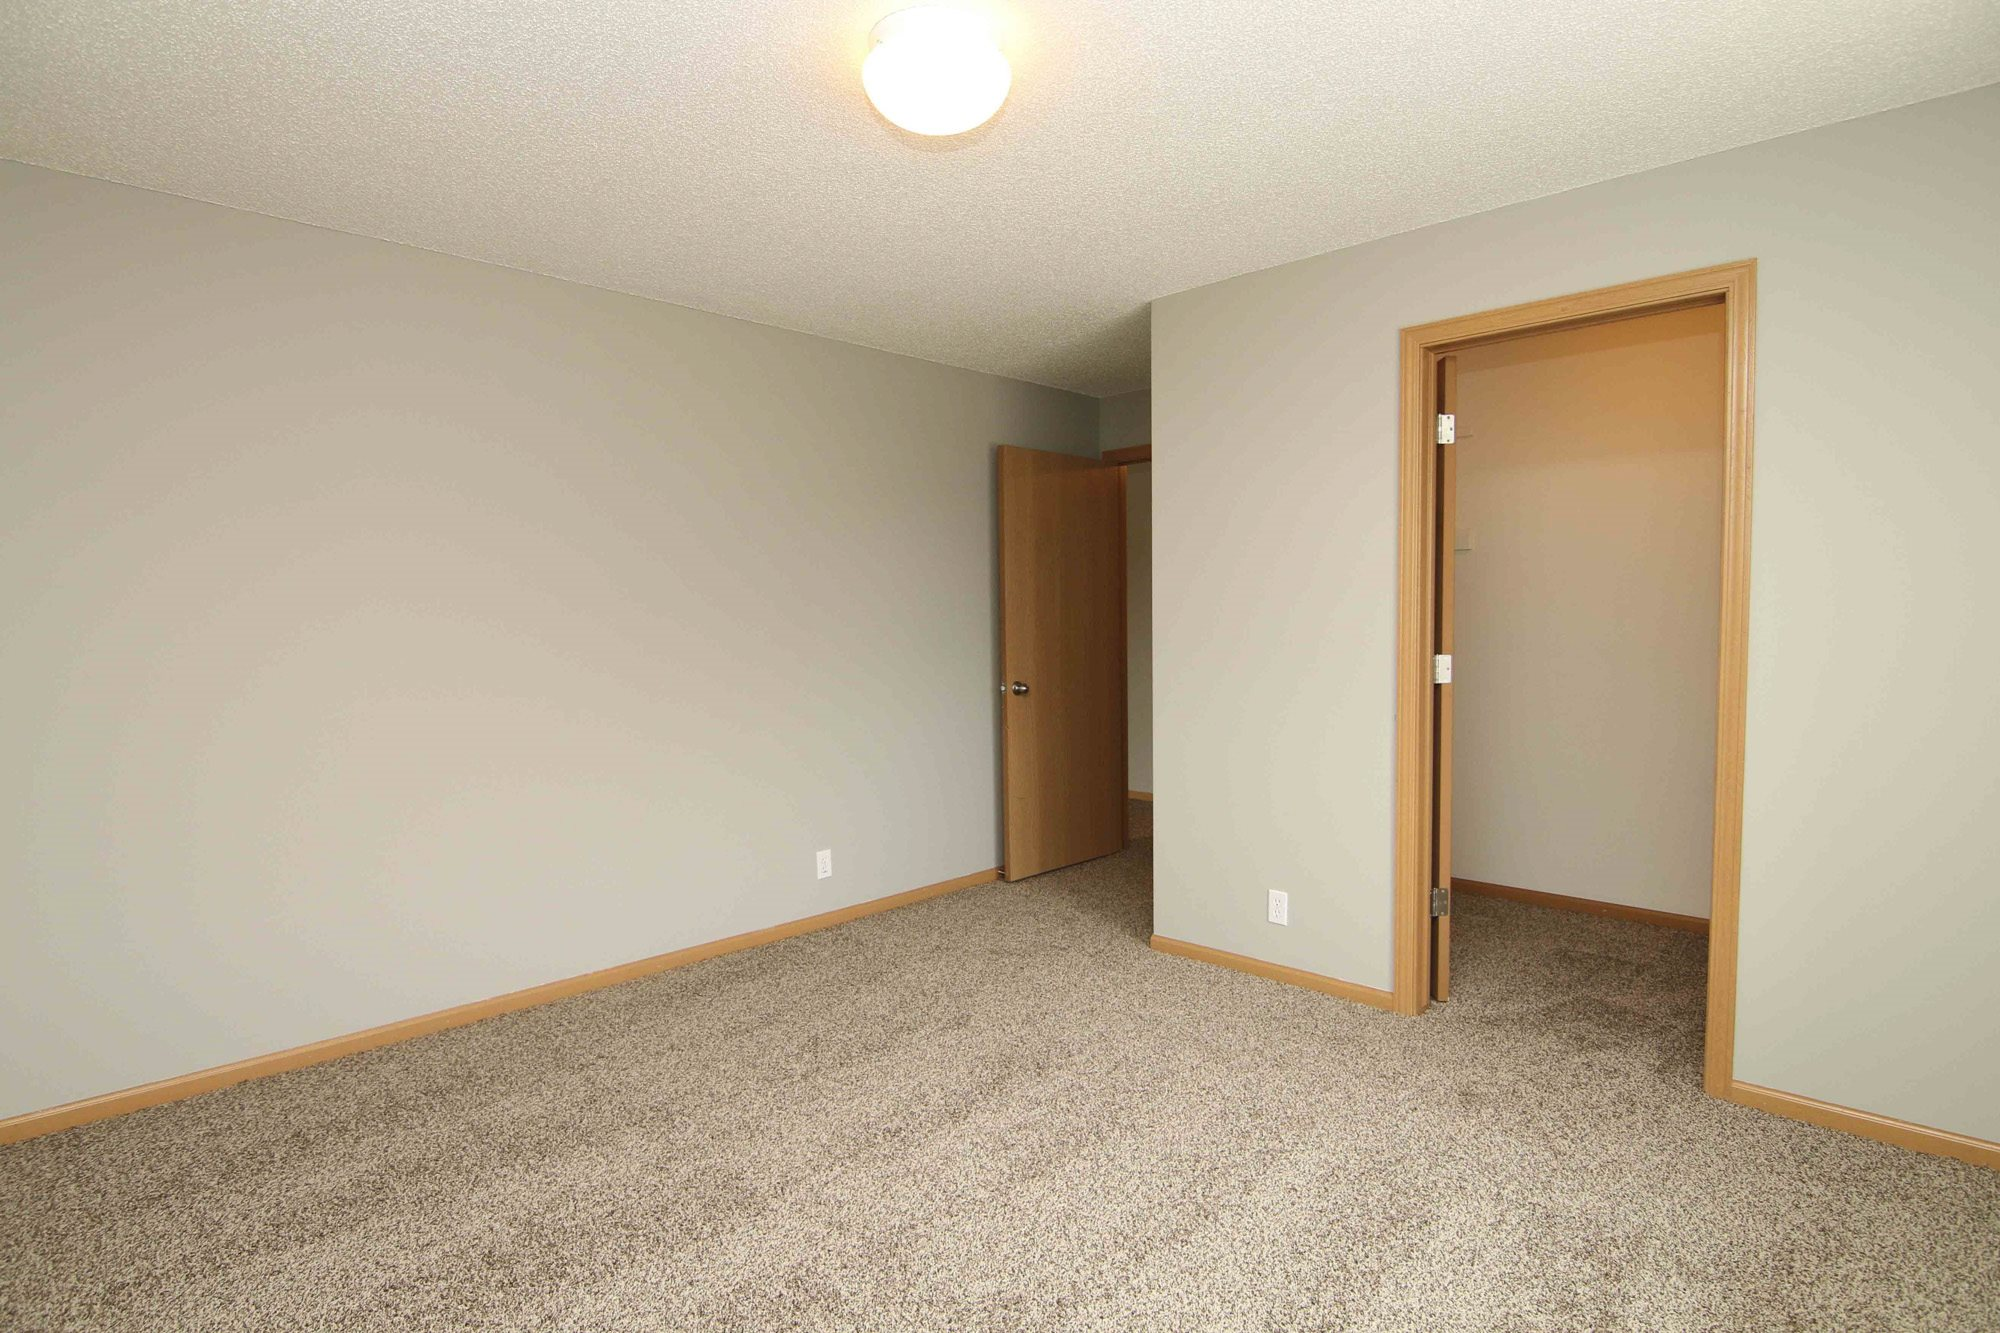 Interiors-Renovated three bedroom at Northbrook Apartments